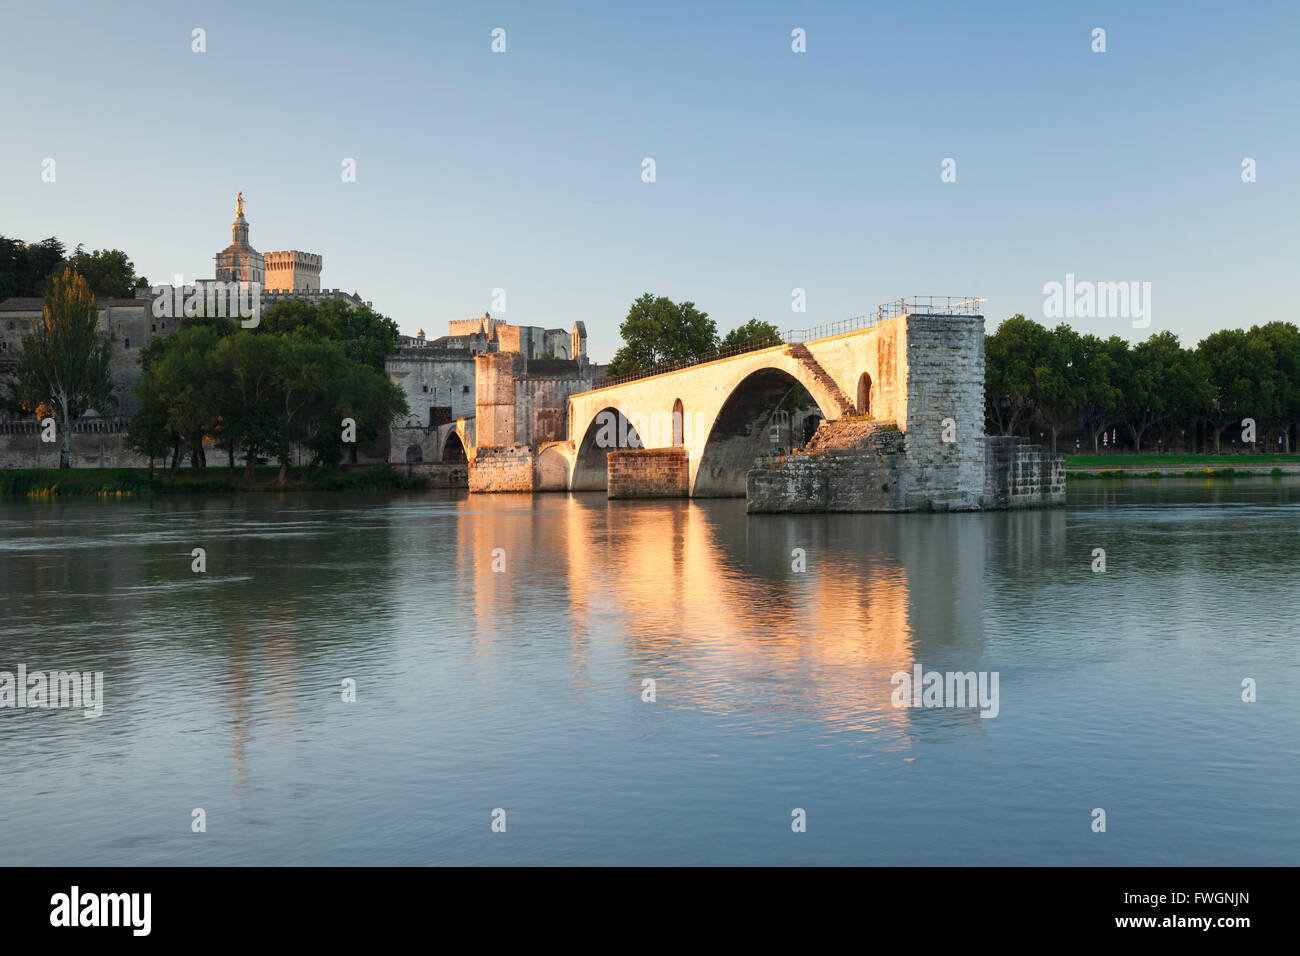 Bridge St. Benezet over Rhone River, UNESCO, Avignon, Vaucluse, Provence-Alpes-Cote d'Azur, France - Stock Image